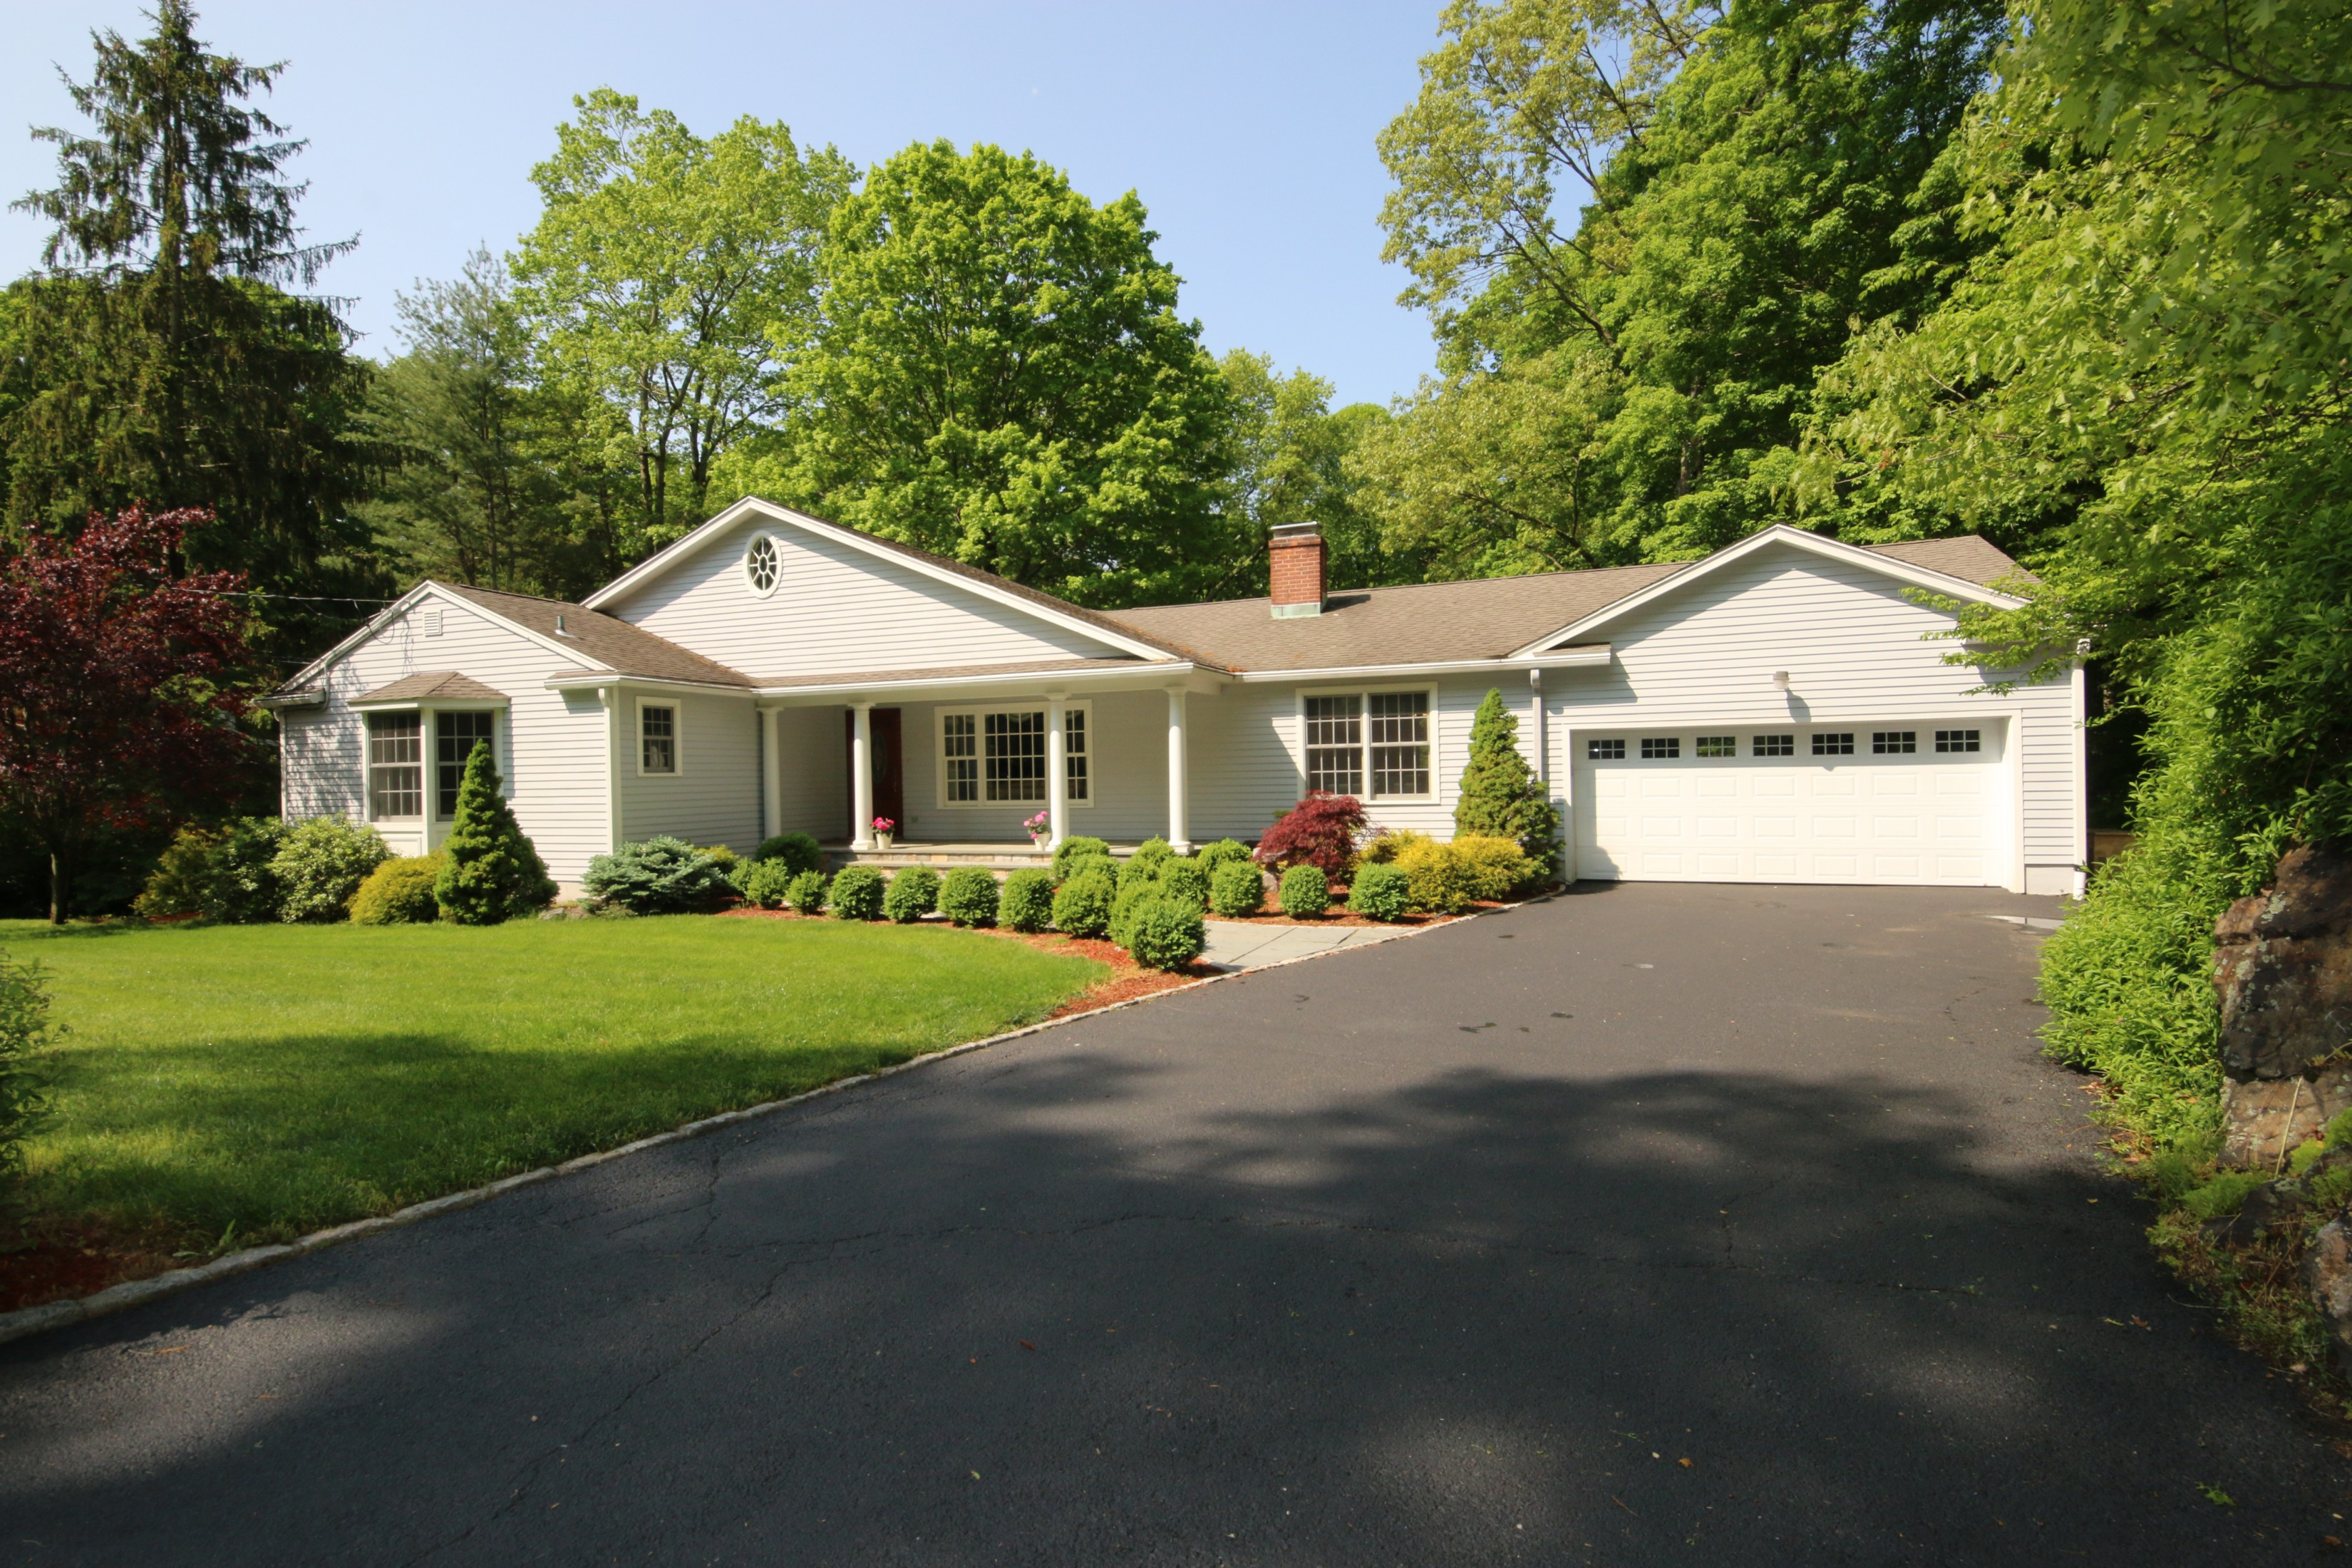 Single Family Home for Sale at Spacious Ranch on Quiet Cul de Sac 10 Kiahs Brook Lane Ridgefield, Connecticut, 06877 United States